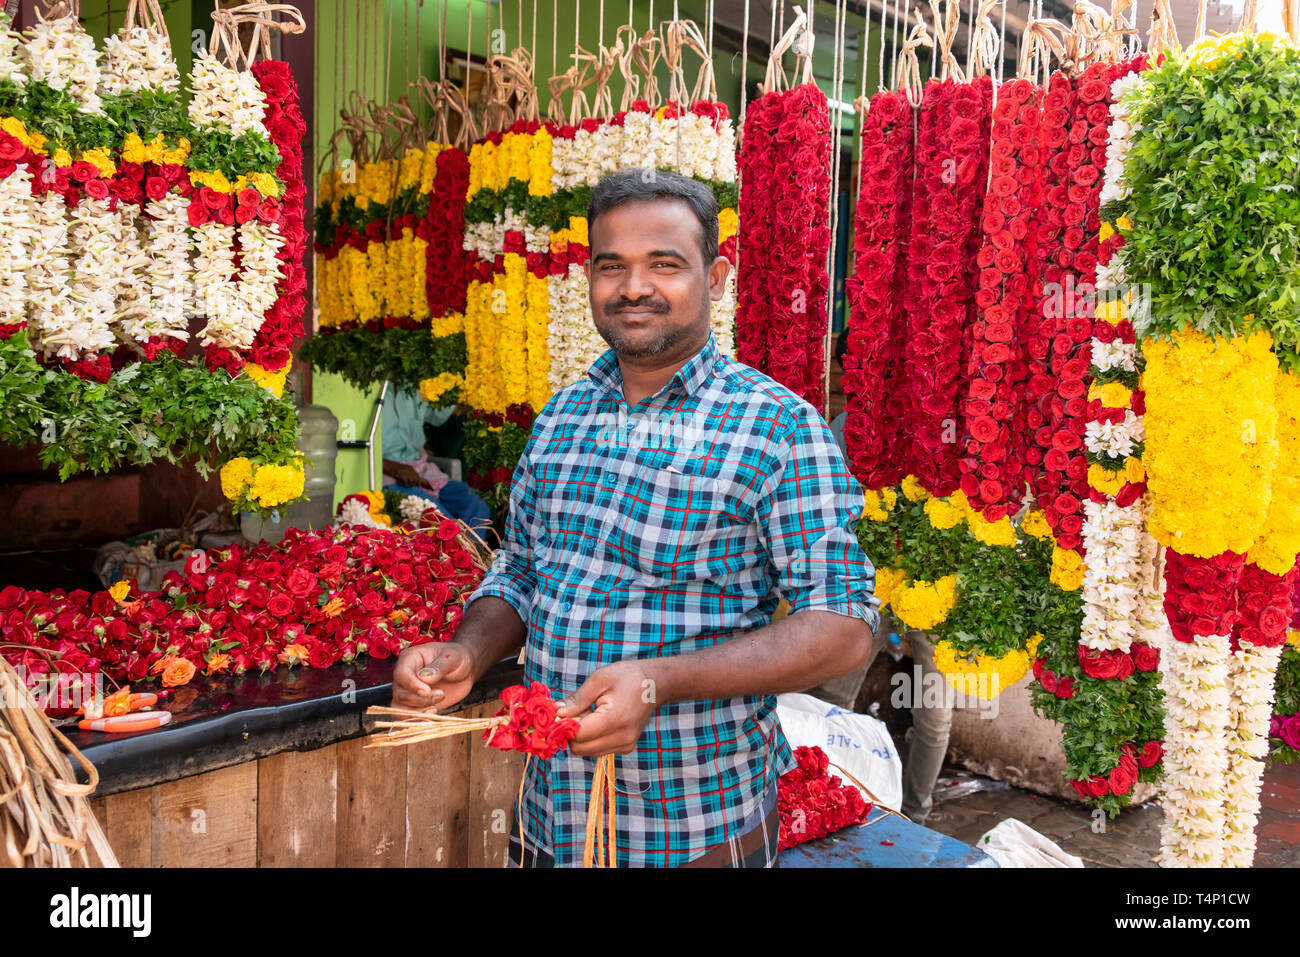 Horizontal view of a man making garlands at Mattuthavani flower market in Madurai, India. - Stock Image